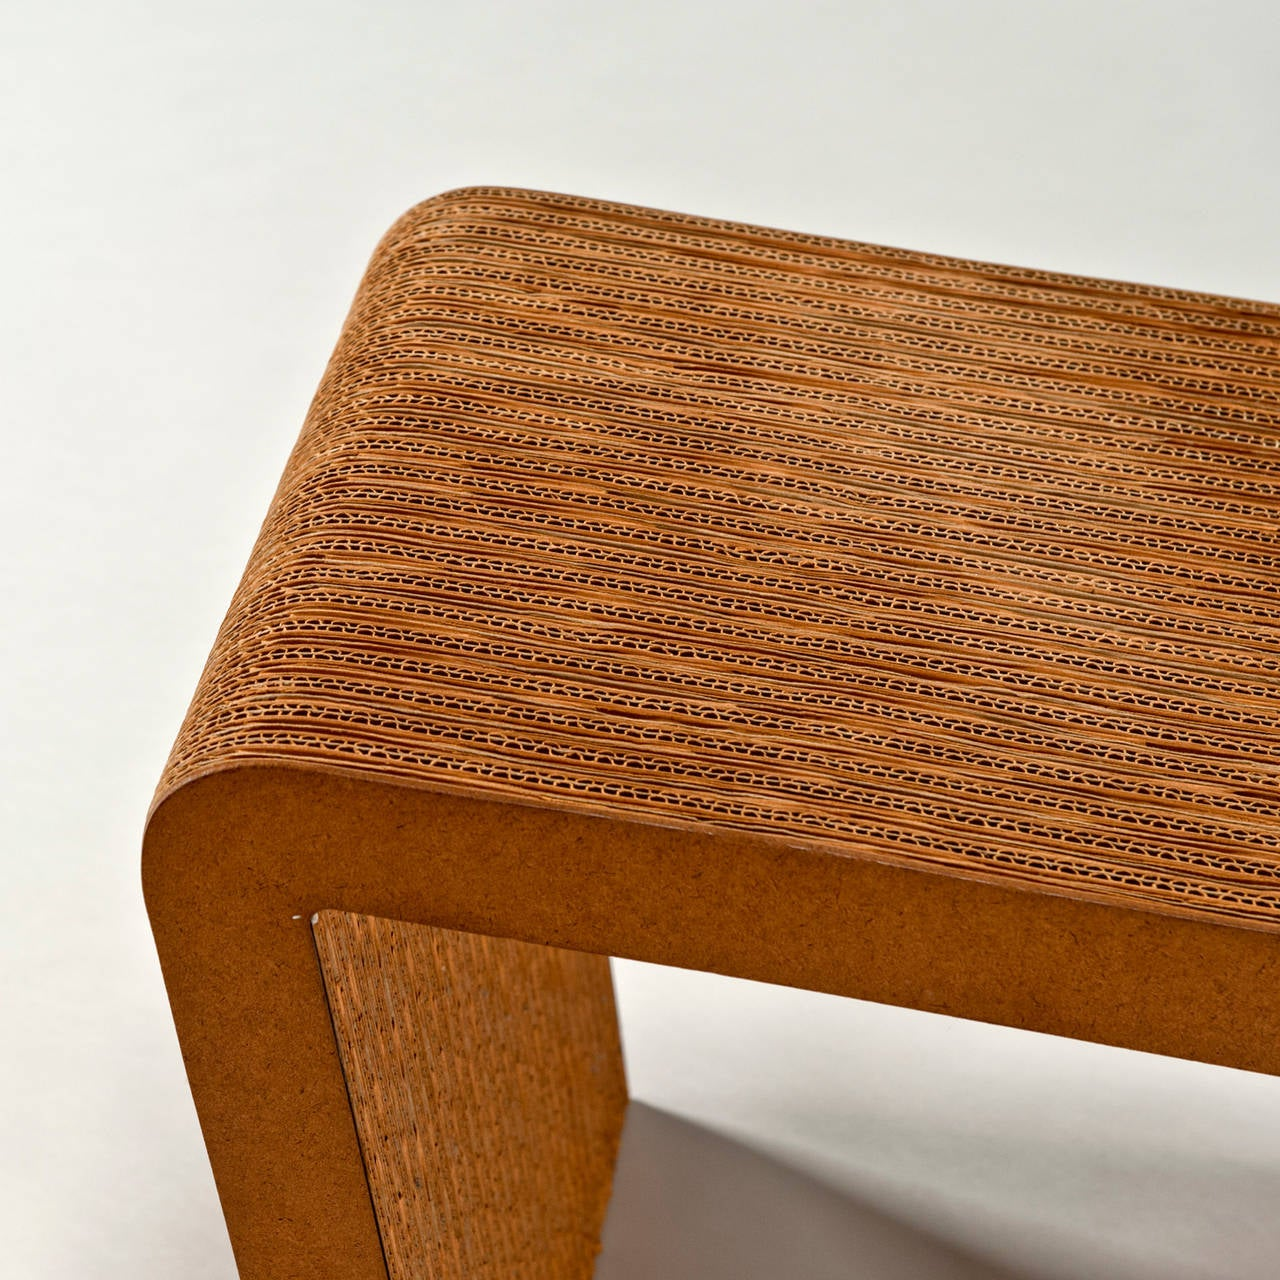 70s chairs is frank o gehry s cardboard chair wiggle side chair - Frank Gehry Side Chair In Cardboard For Vitra Edition 3